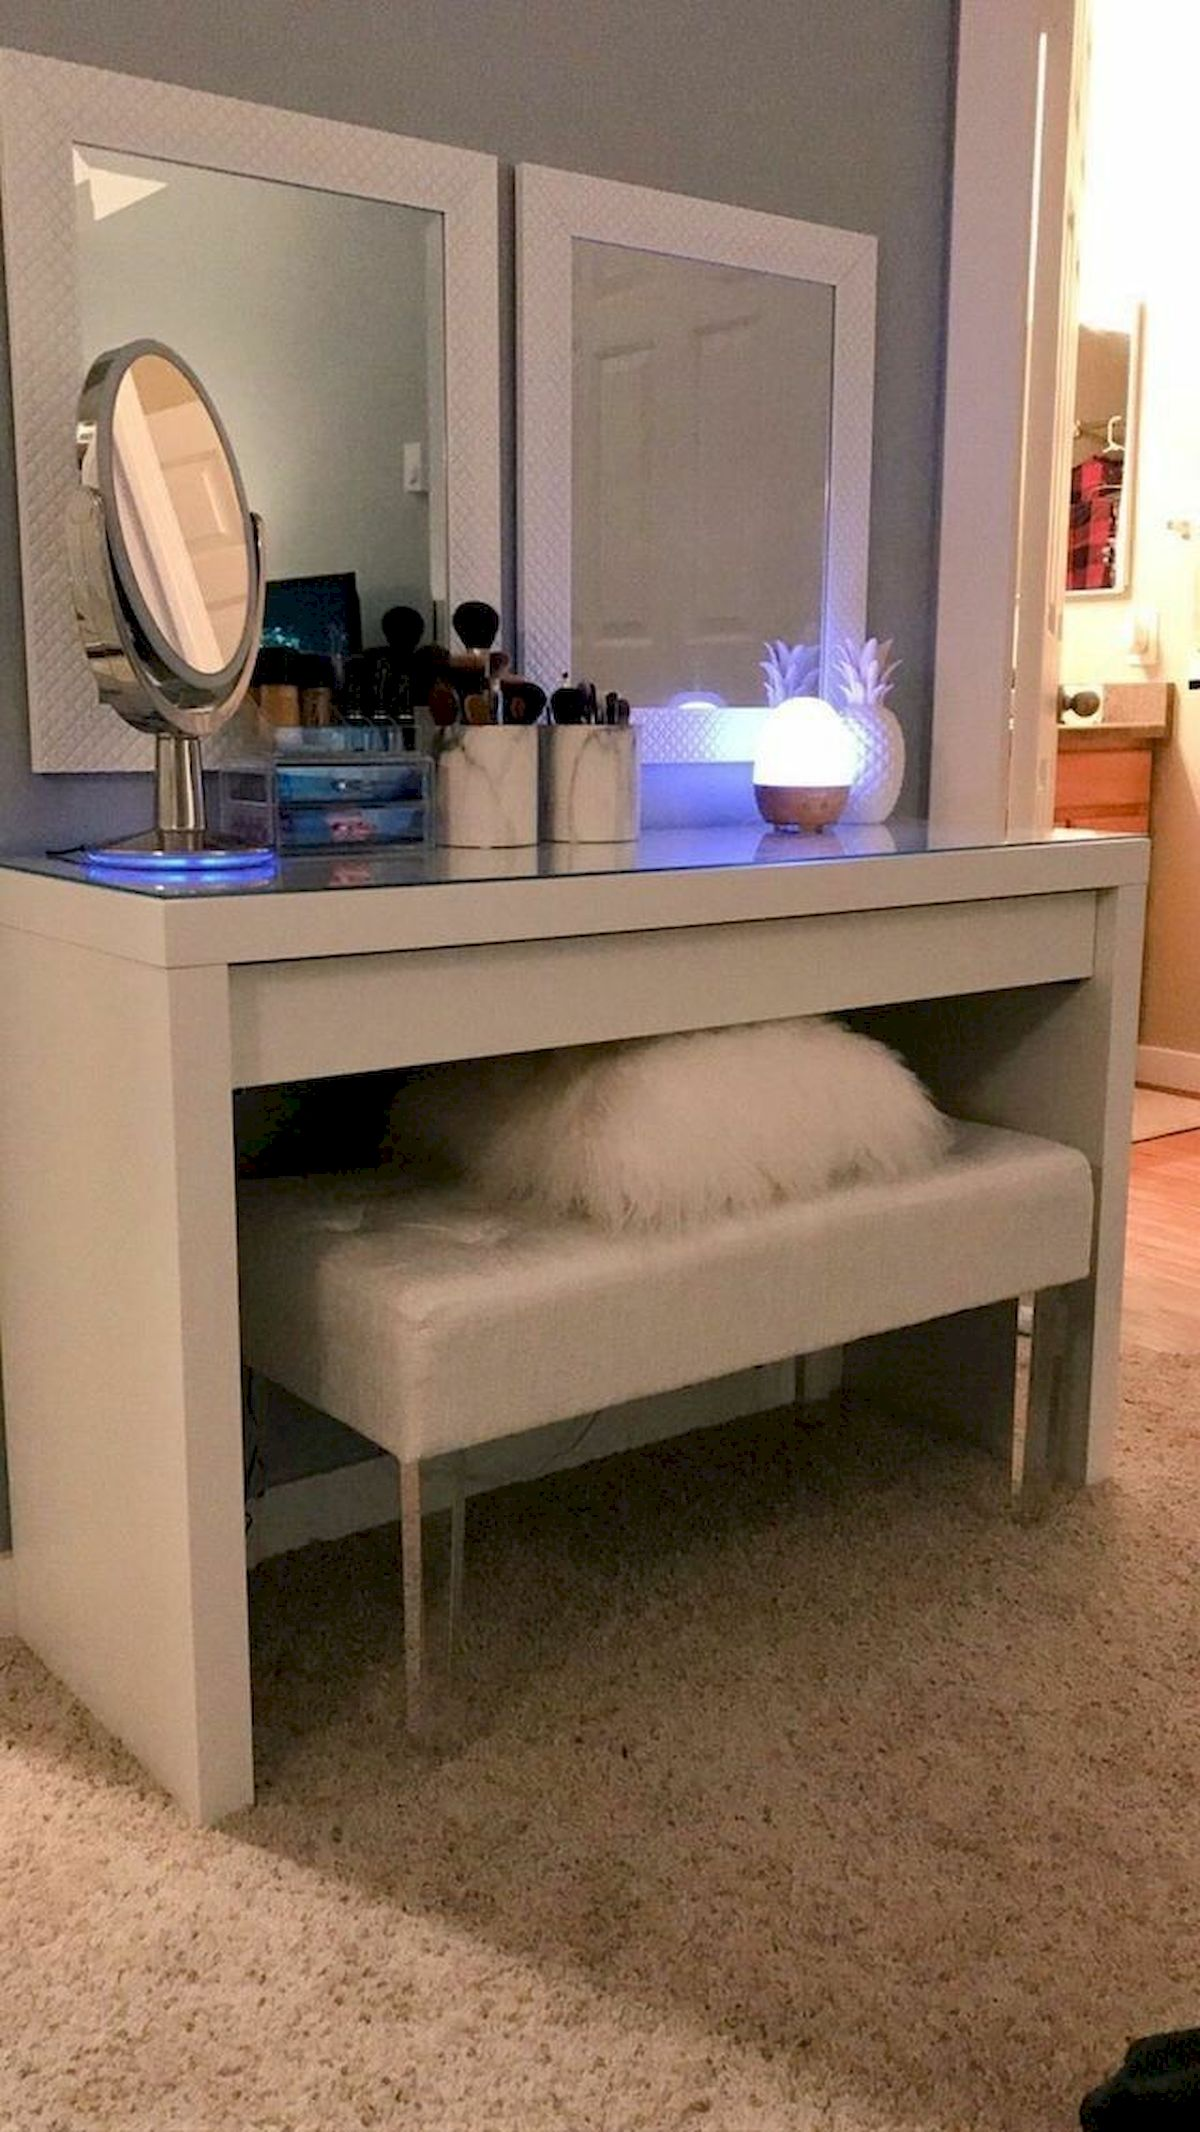 40 Beautiful Make Up Room Ideas in Your Bedroom (19)